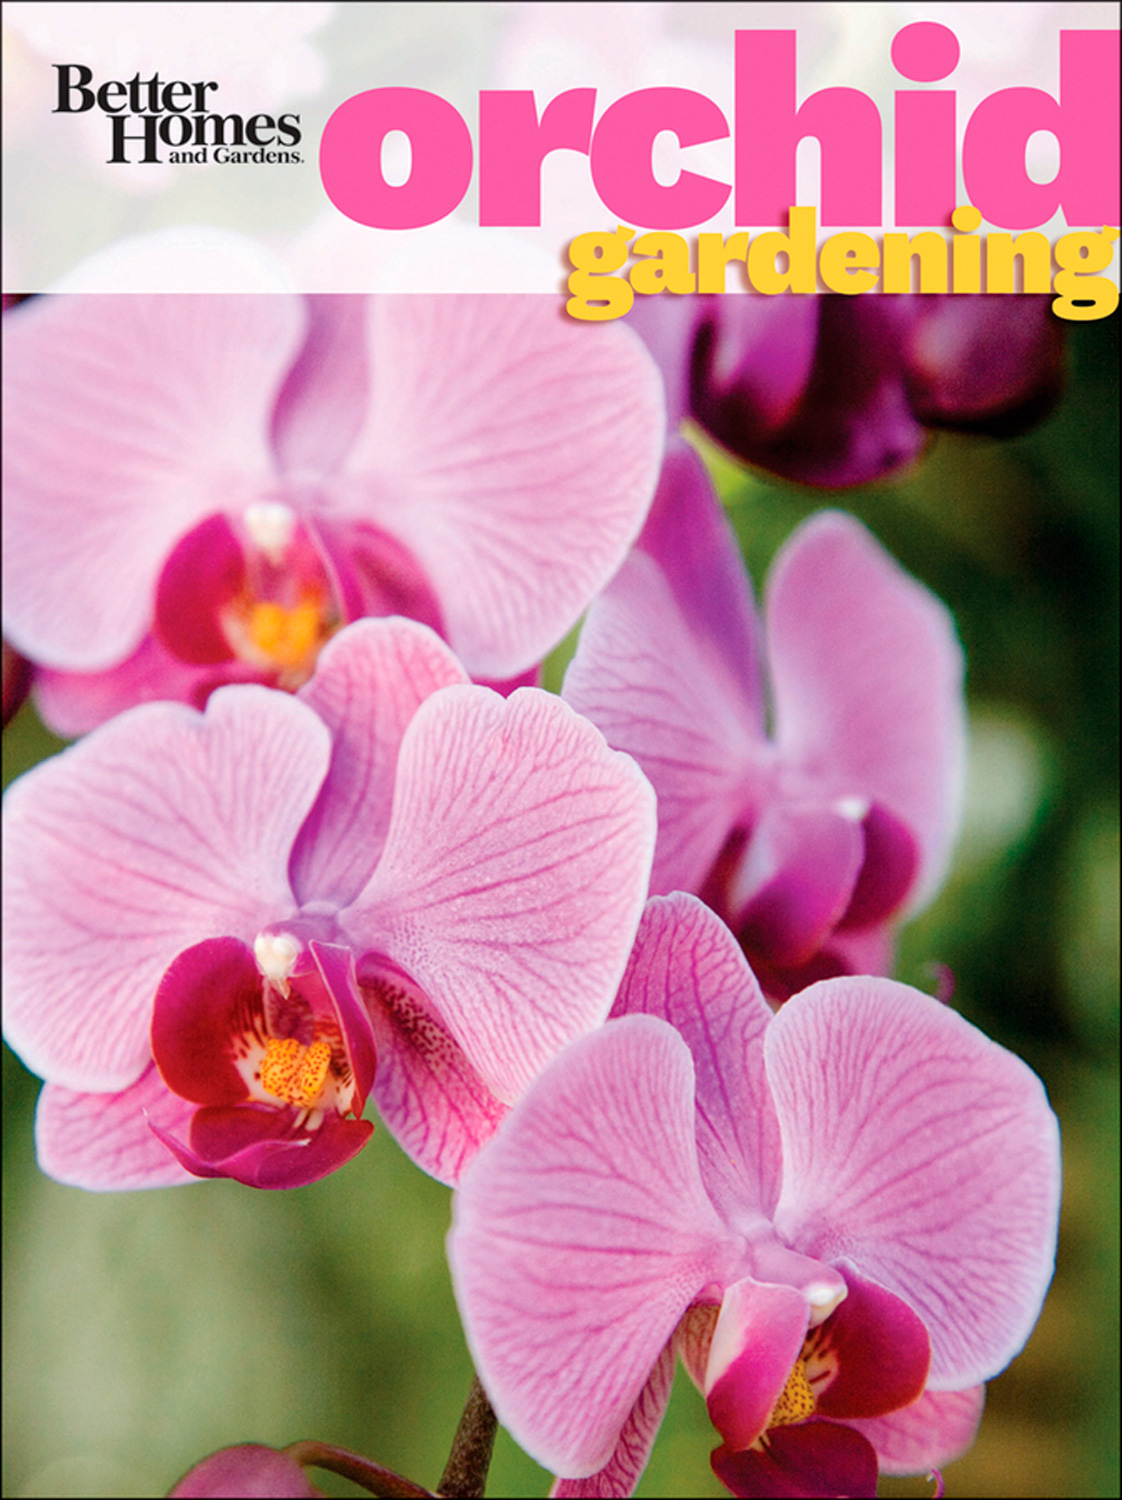 Better Homes and Gardens Orchid Gardening-9780470930281